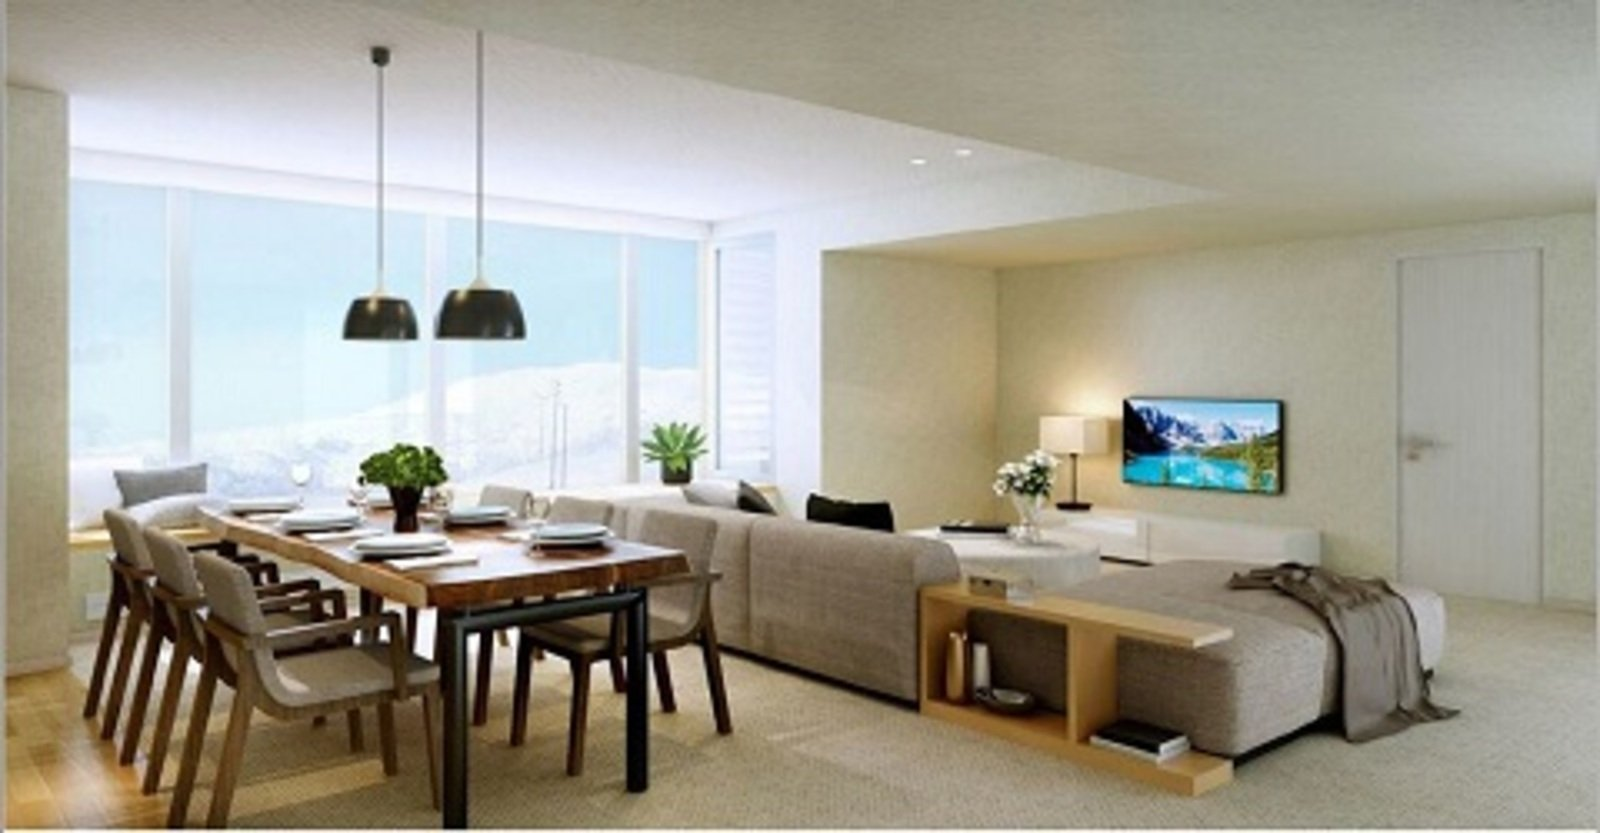 The living room in a 4 bedroom penthouse with Yotei views in The Maples, Niseko.